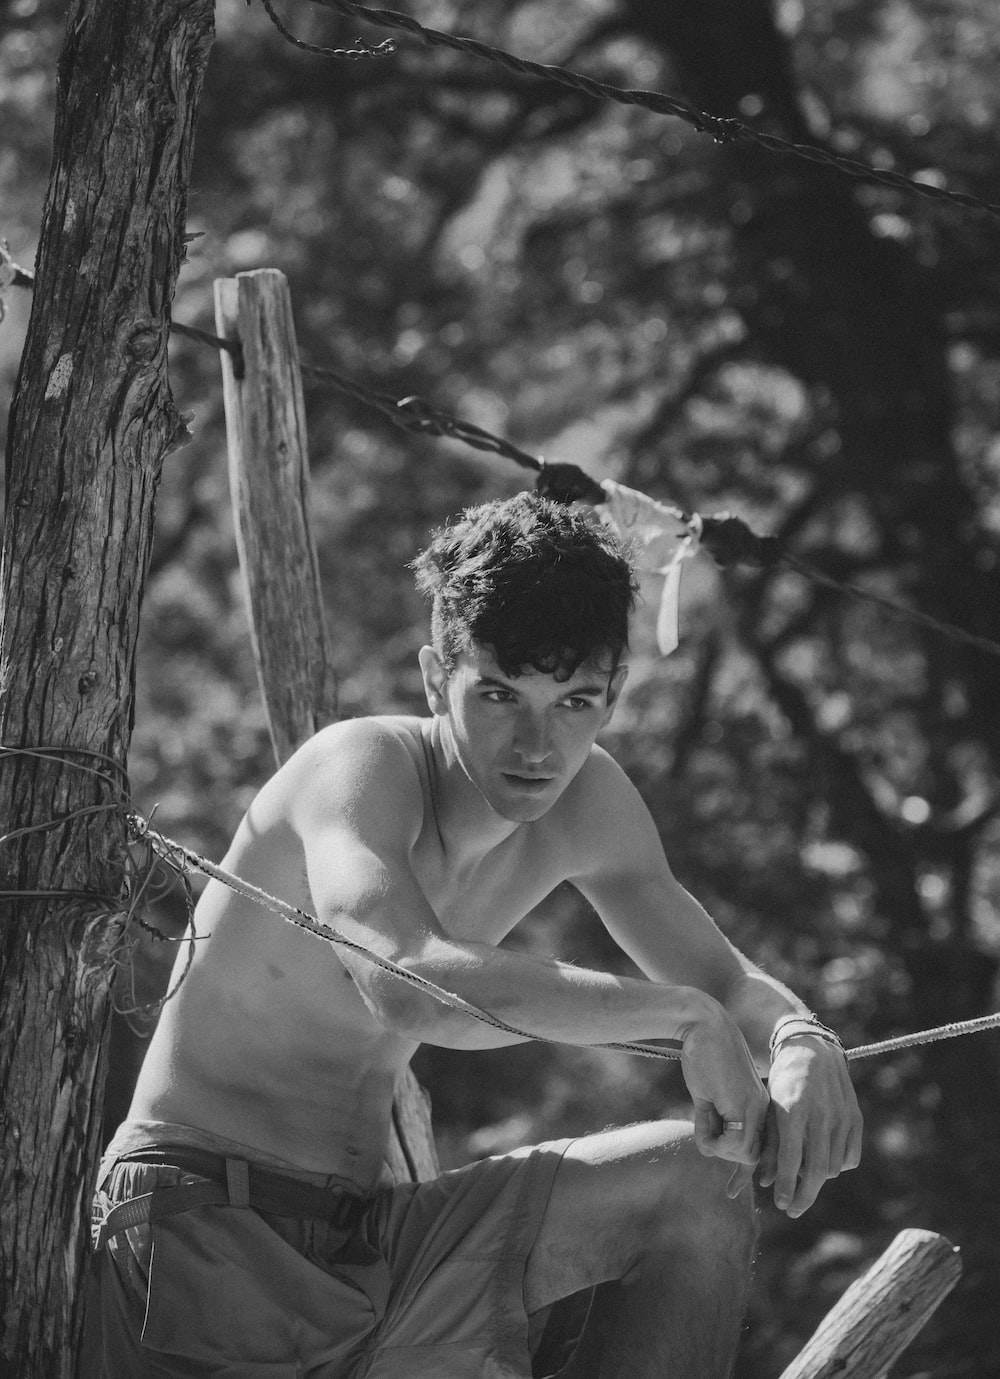 topless man in shorts holding rope